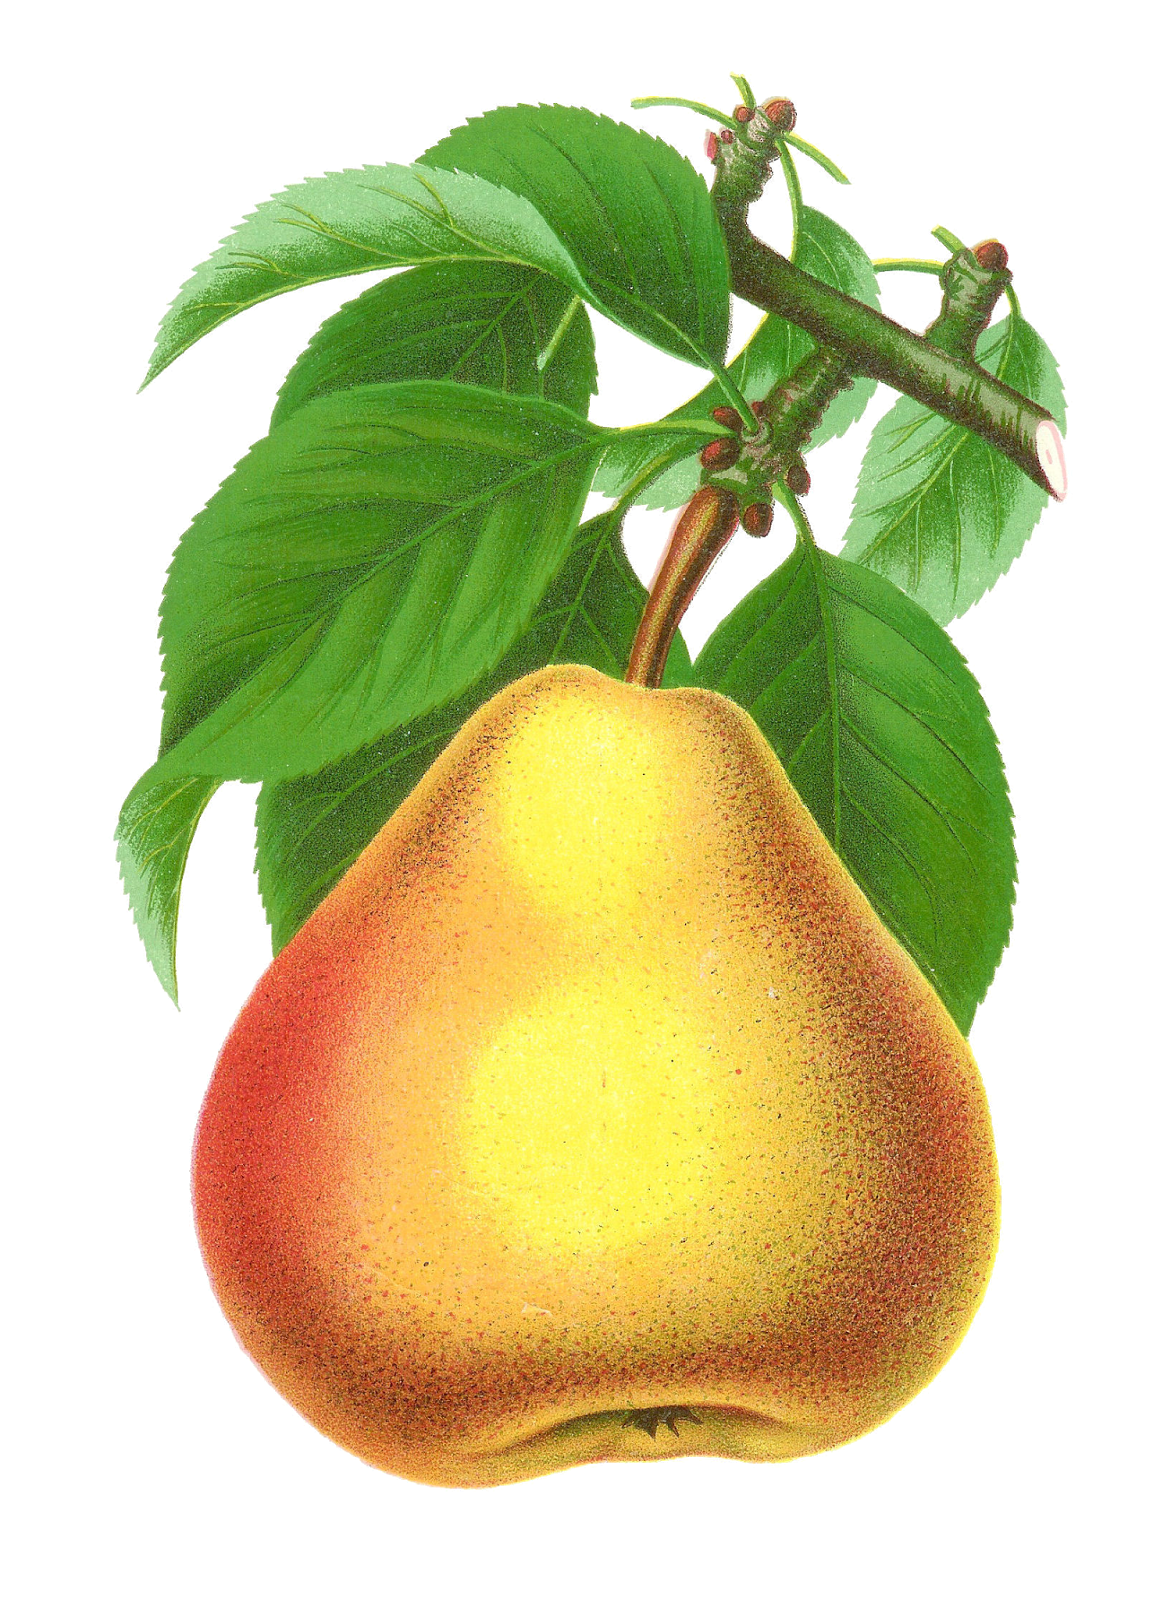 Pear clipart pear fruit. Antique images digital stock